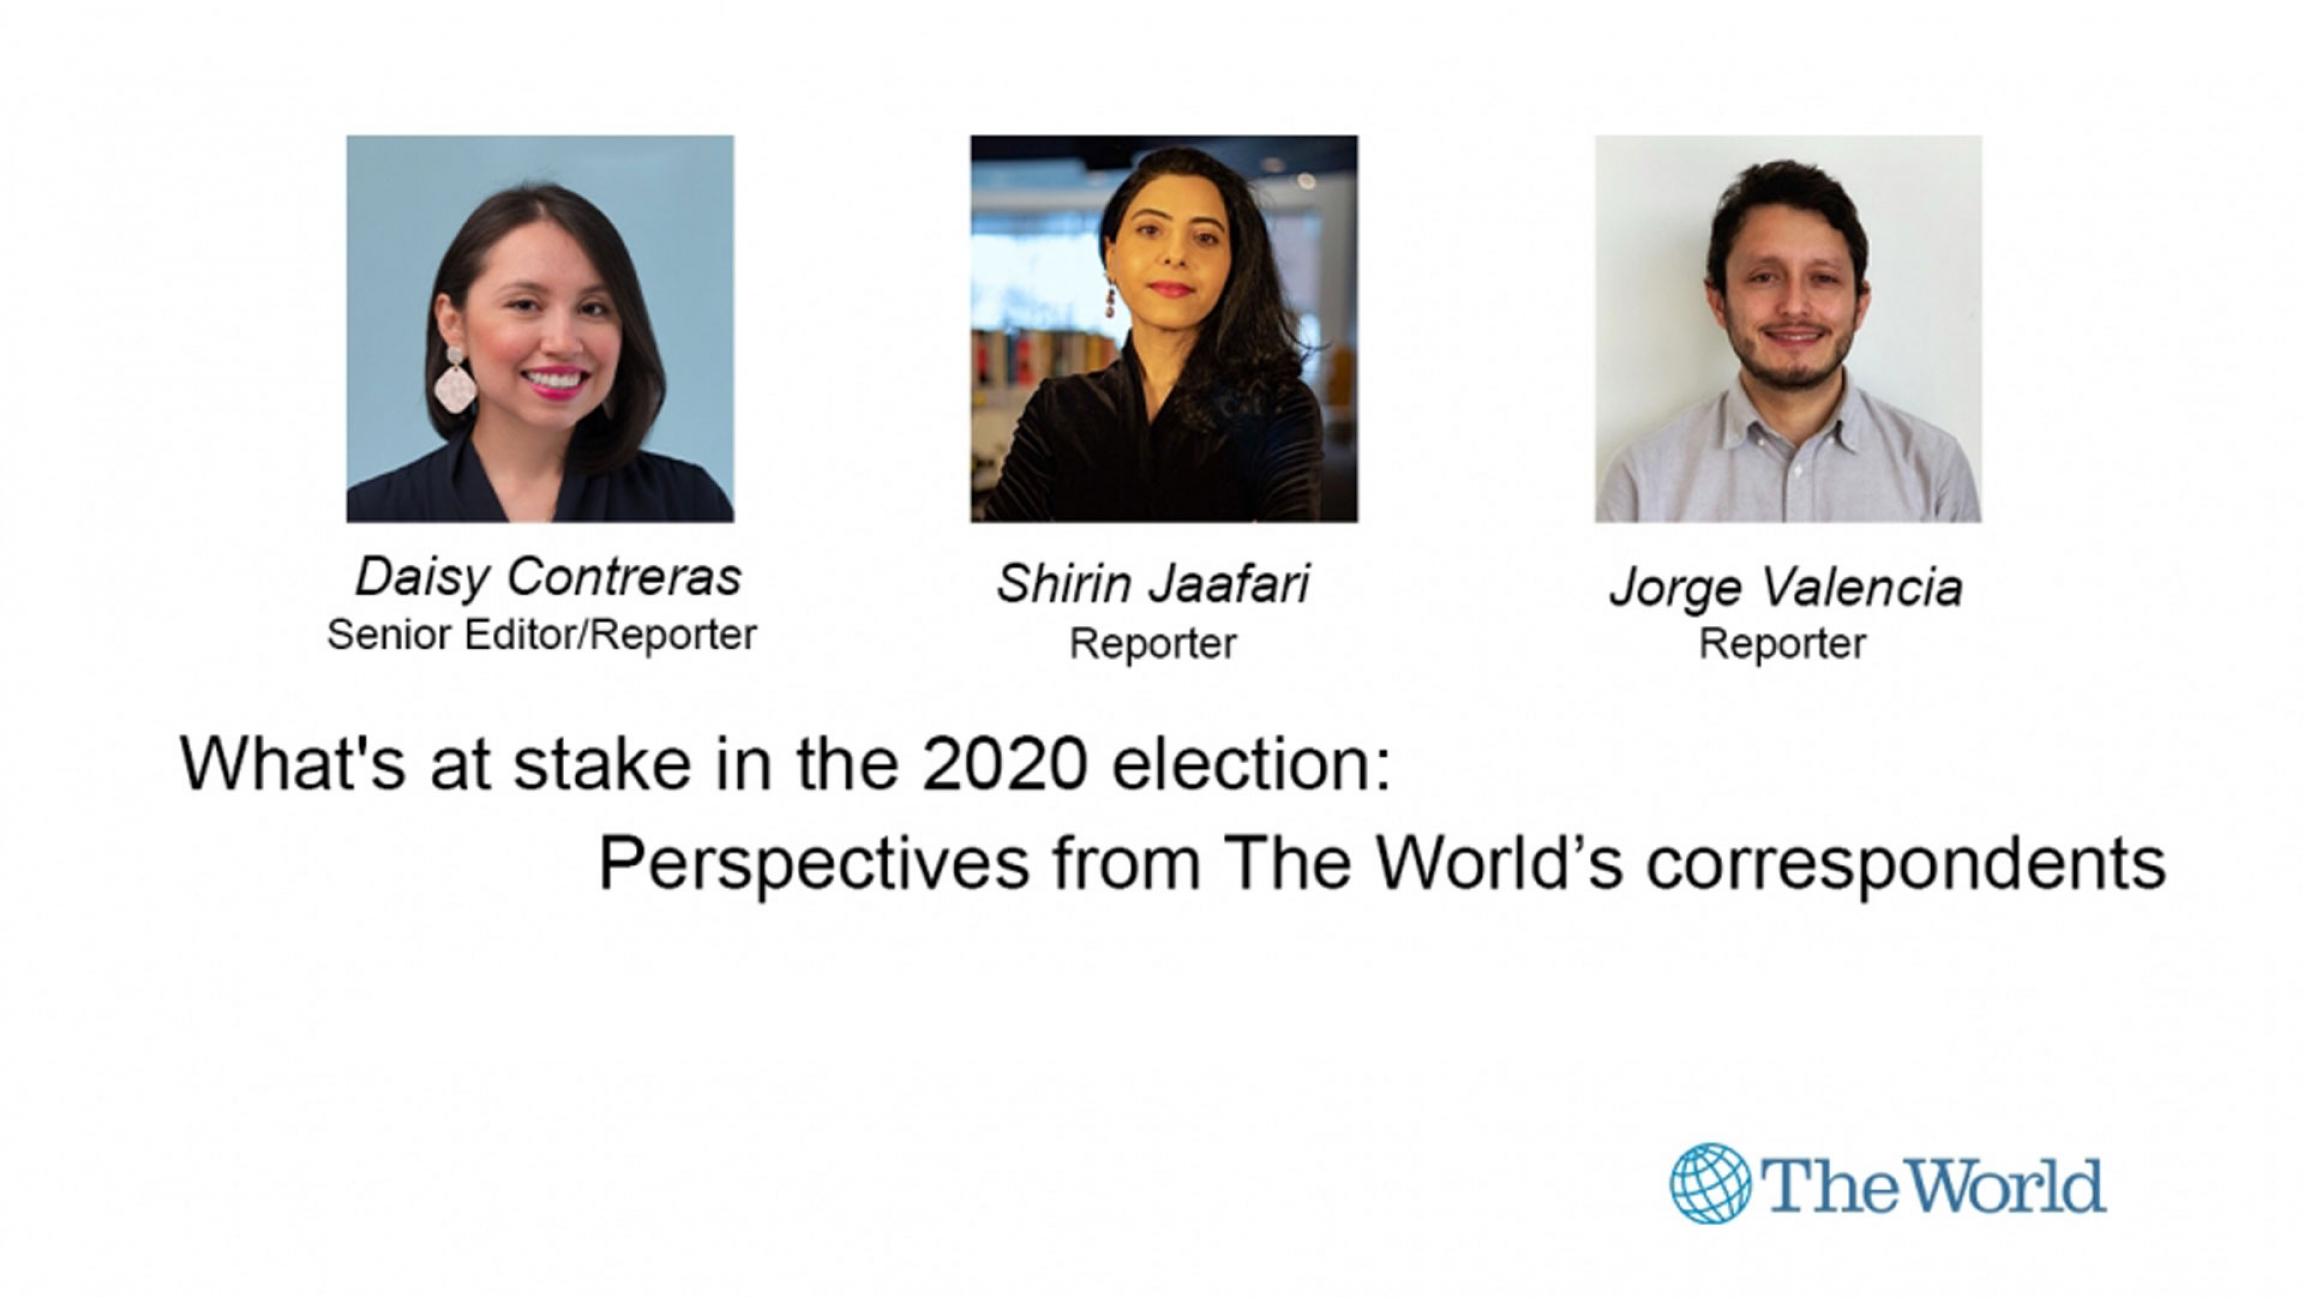 The World's Daisy Contreras (left), Shirin Jaafari (center) and Jorge Valencia in a graphic promoting a Facebook live discussion.